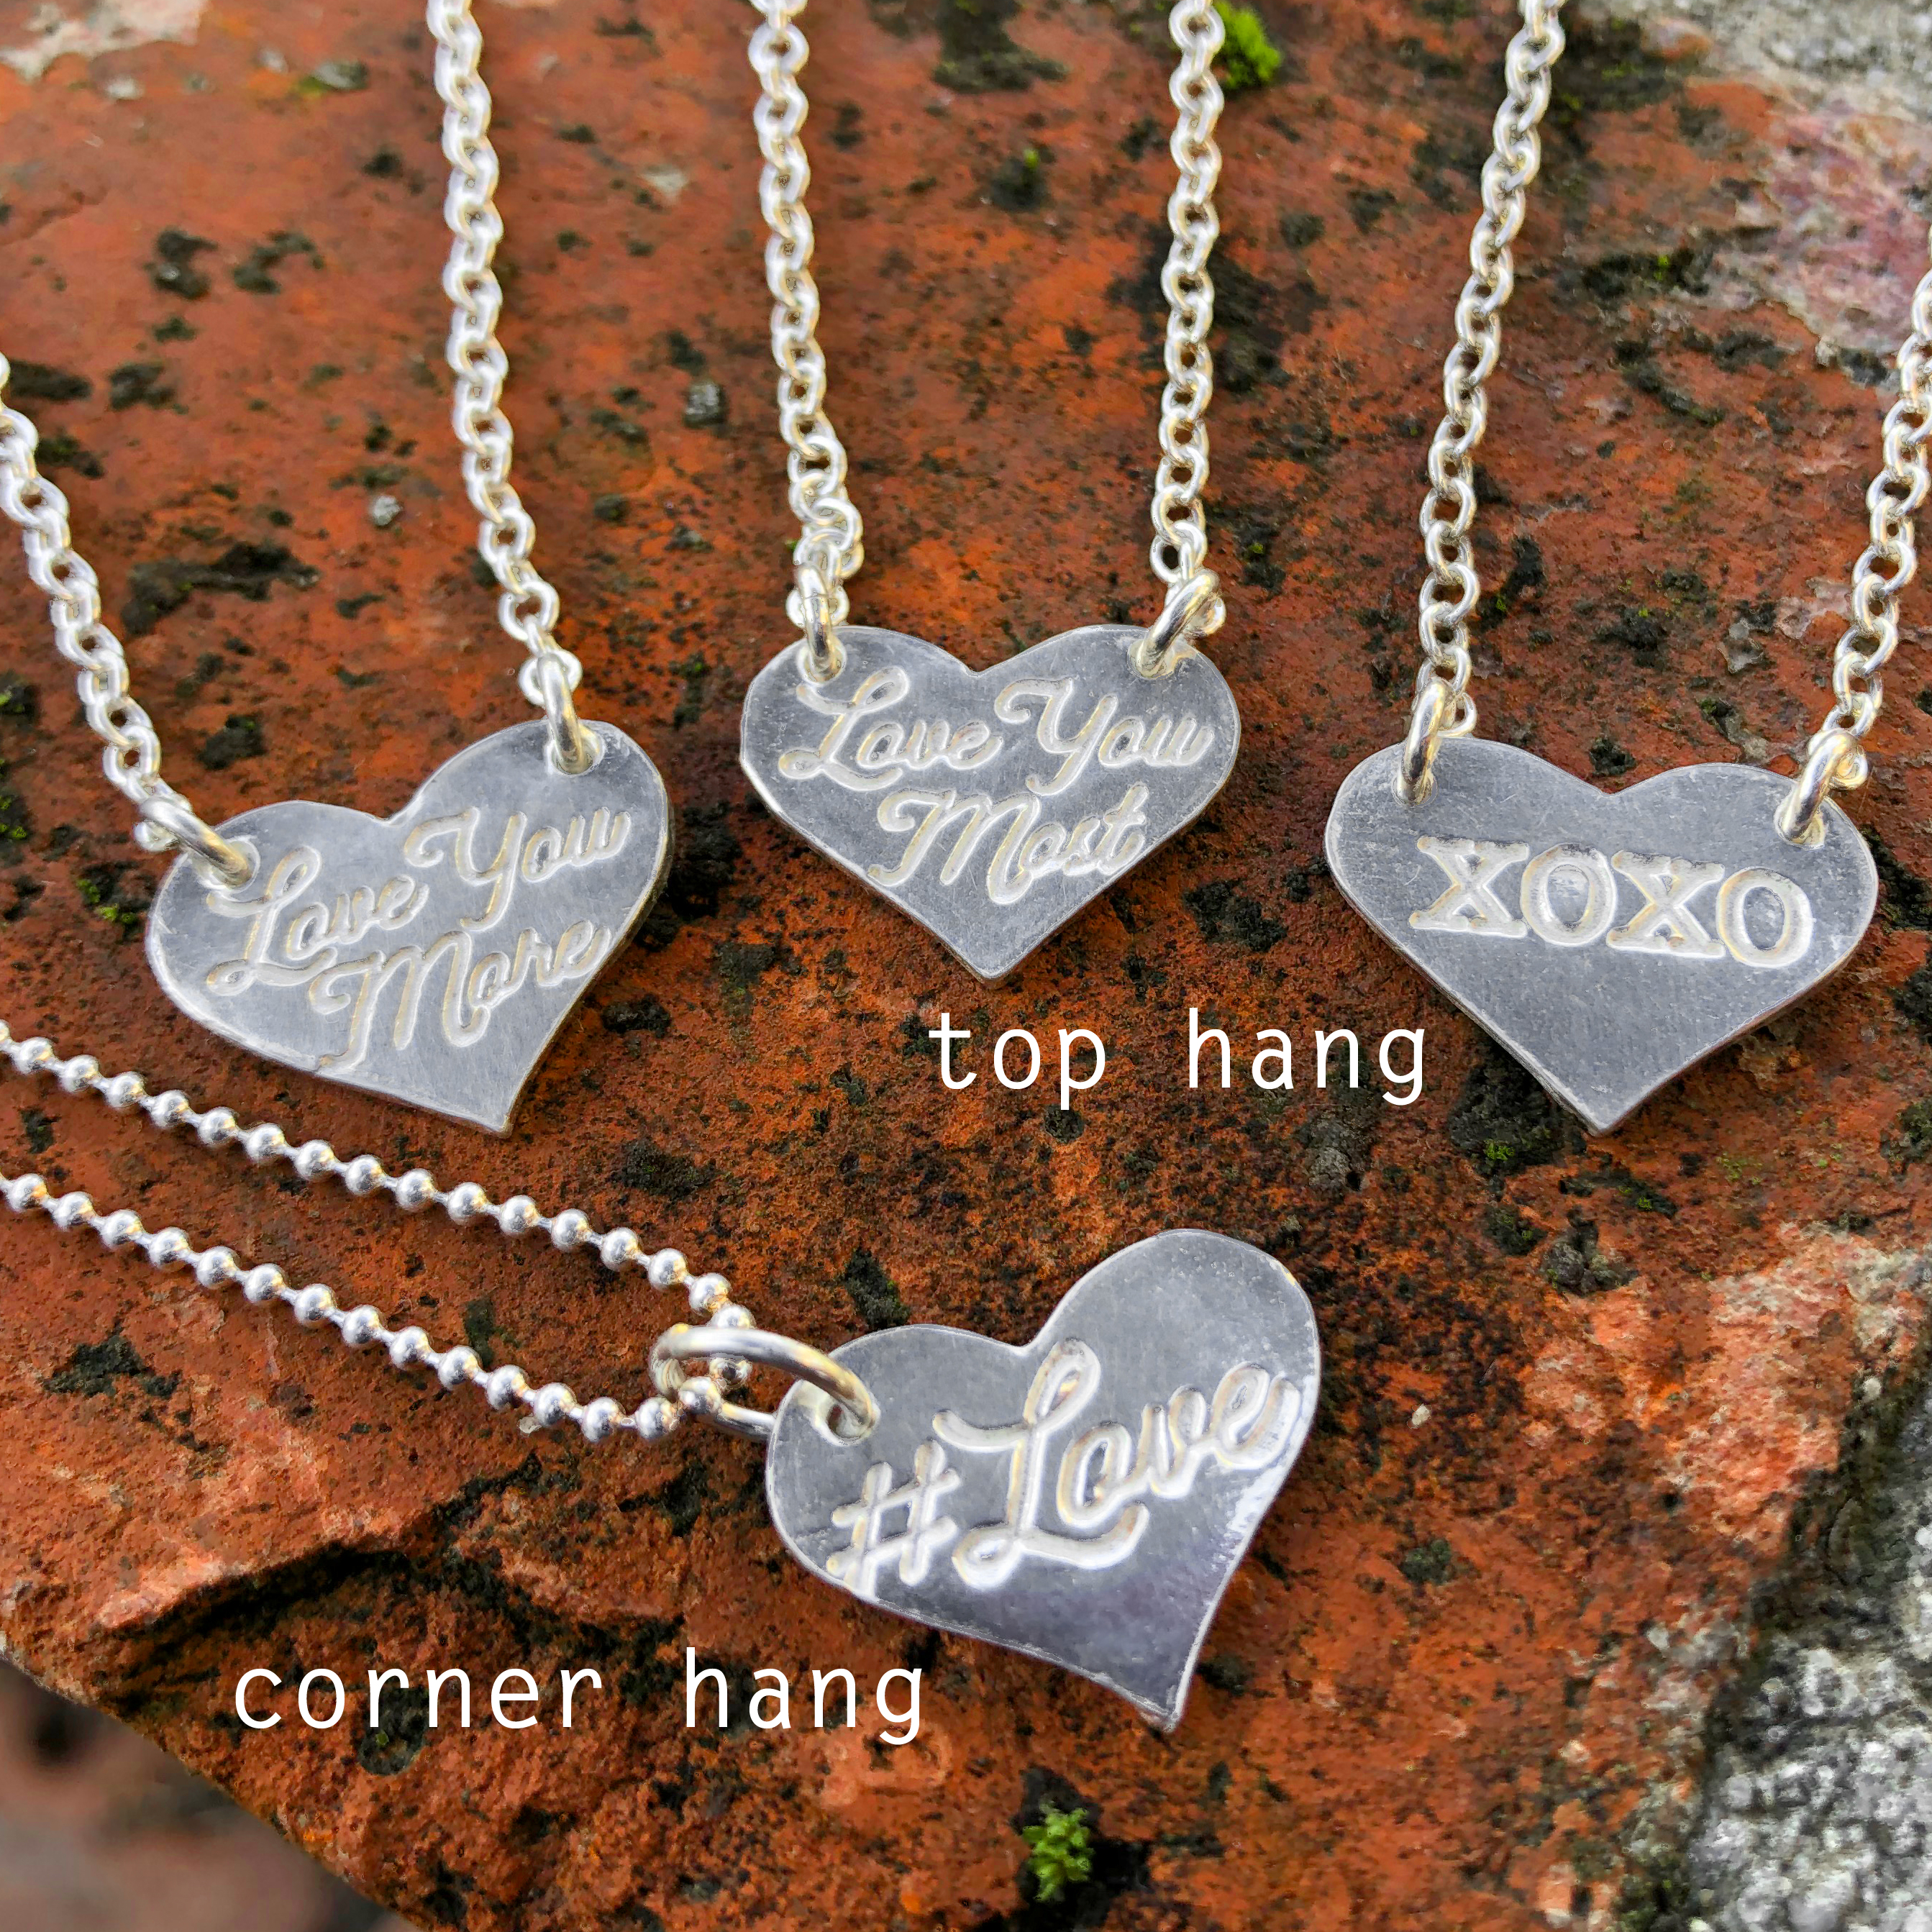 Heart Message Necklace  (shows both top hang and corner hang design)